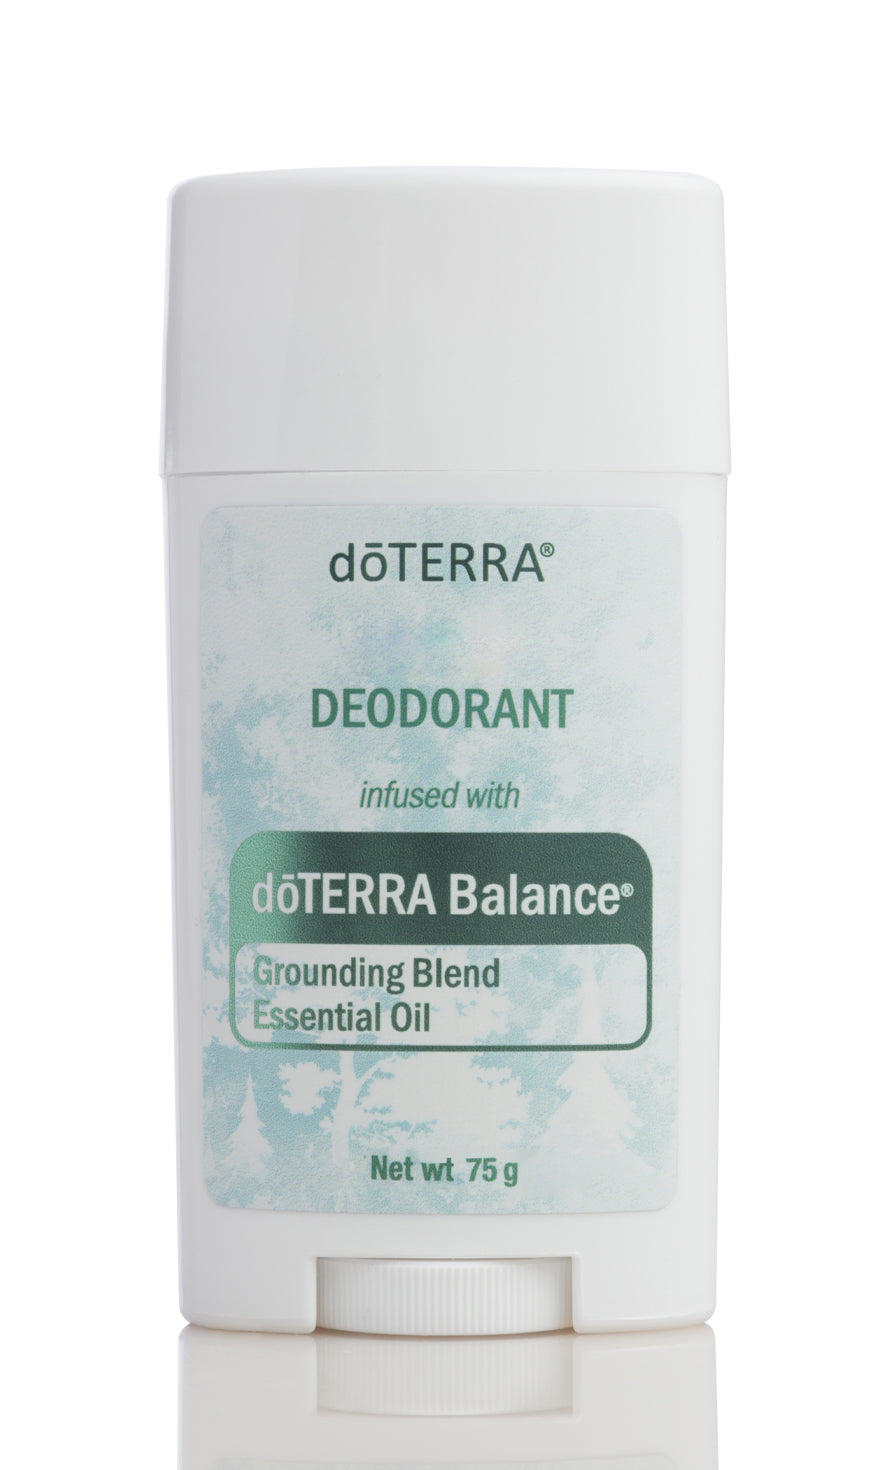 Deodorant infused with dōTERRA Balance® Essential Oil